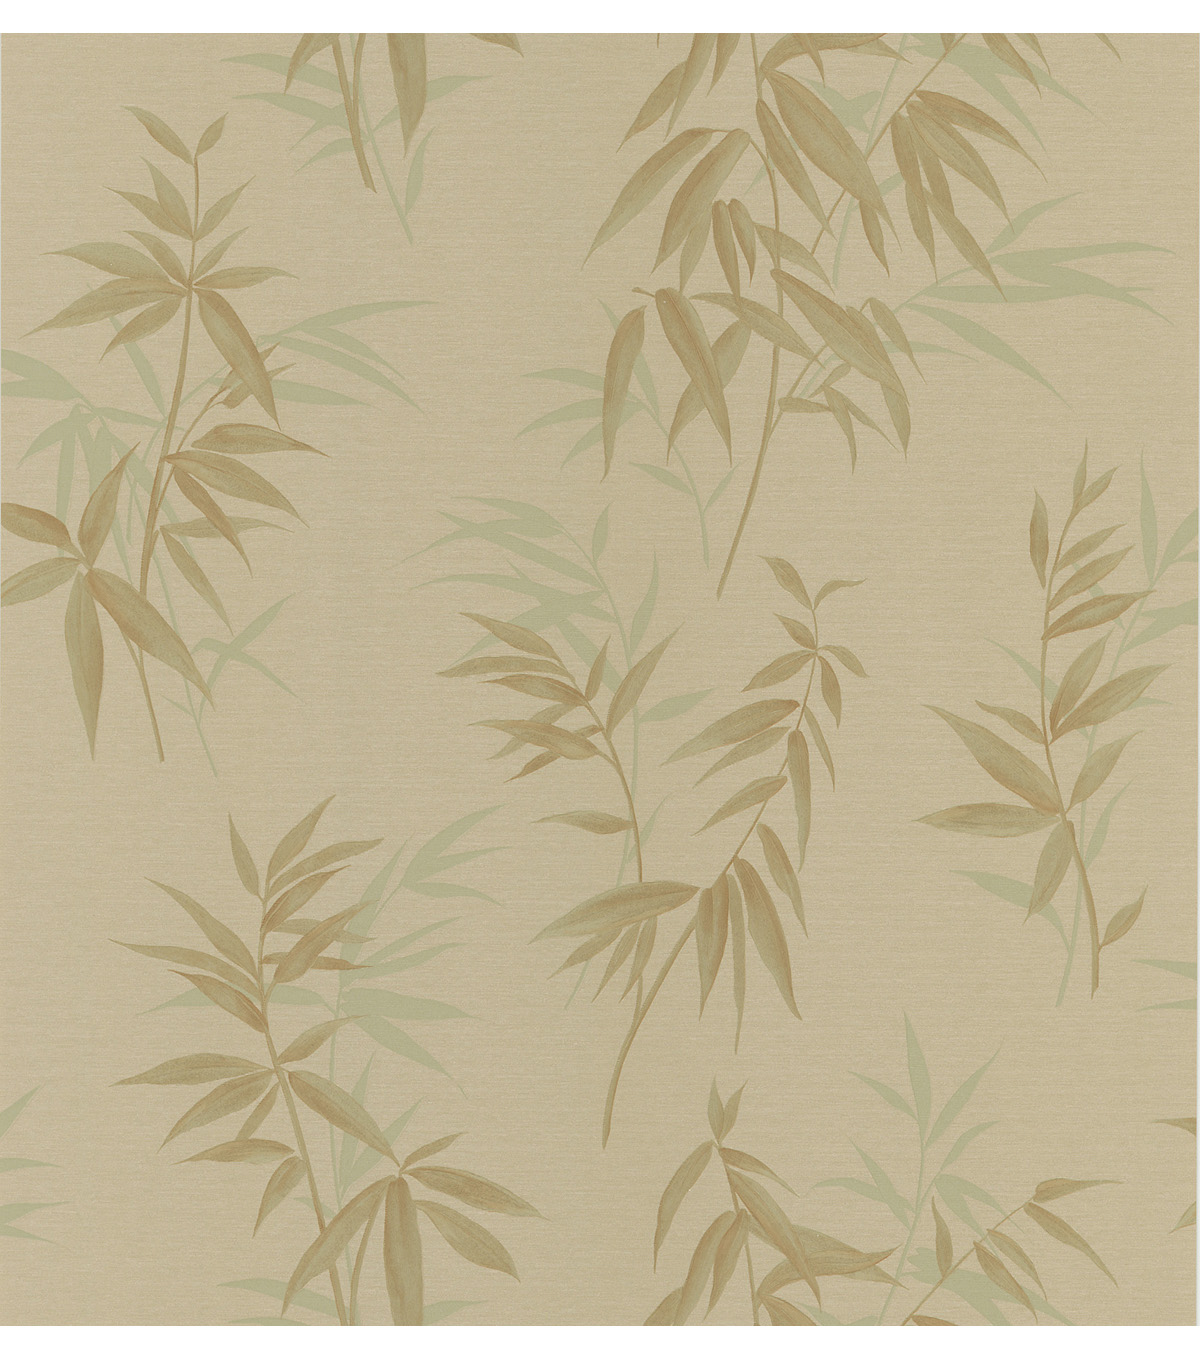 Bamboo Shoot Gold Leaves Wallpaper Sample